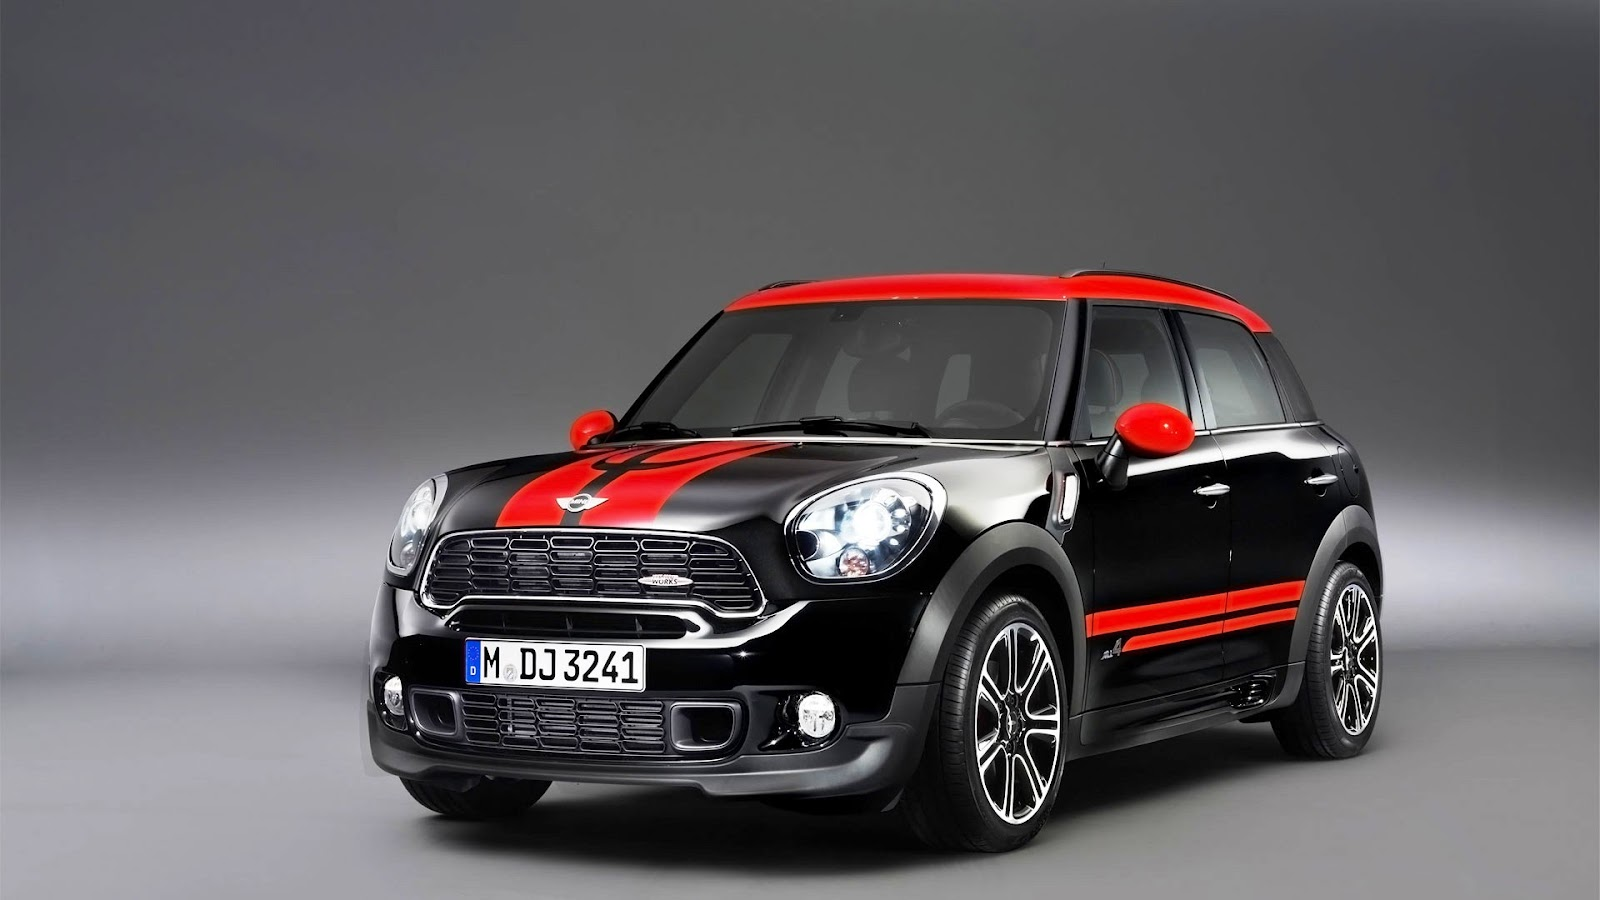 2013 mini cooper countryman s all4 john cooper works front html autos post. Black Bedroom Furniture Sets. Home Design Ideas